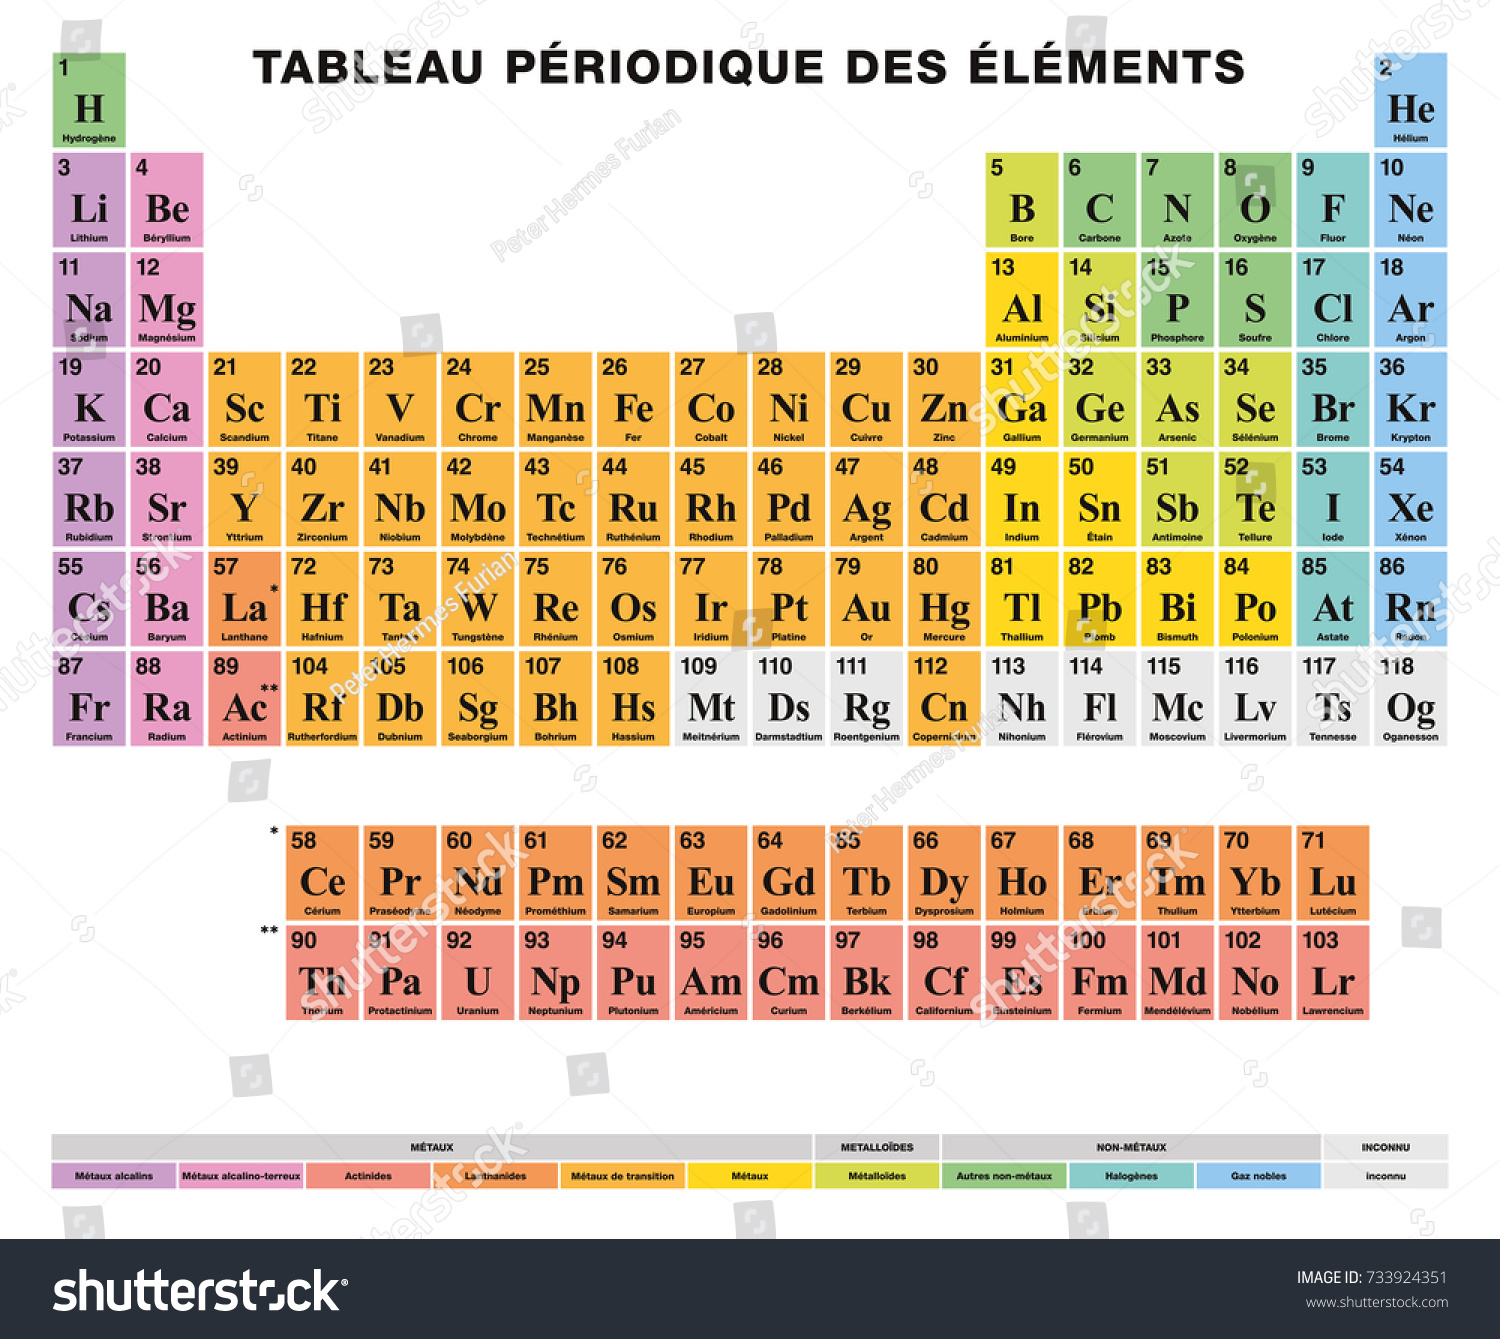 Periodic table labeling images periodic table images periodic table labeling choice image periodic table images periodic table labeling gallery periodic table images periodic gamestrikefo Images